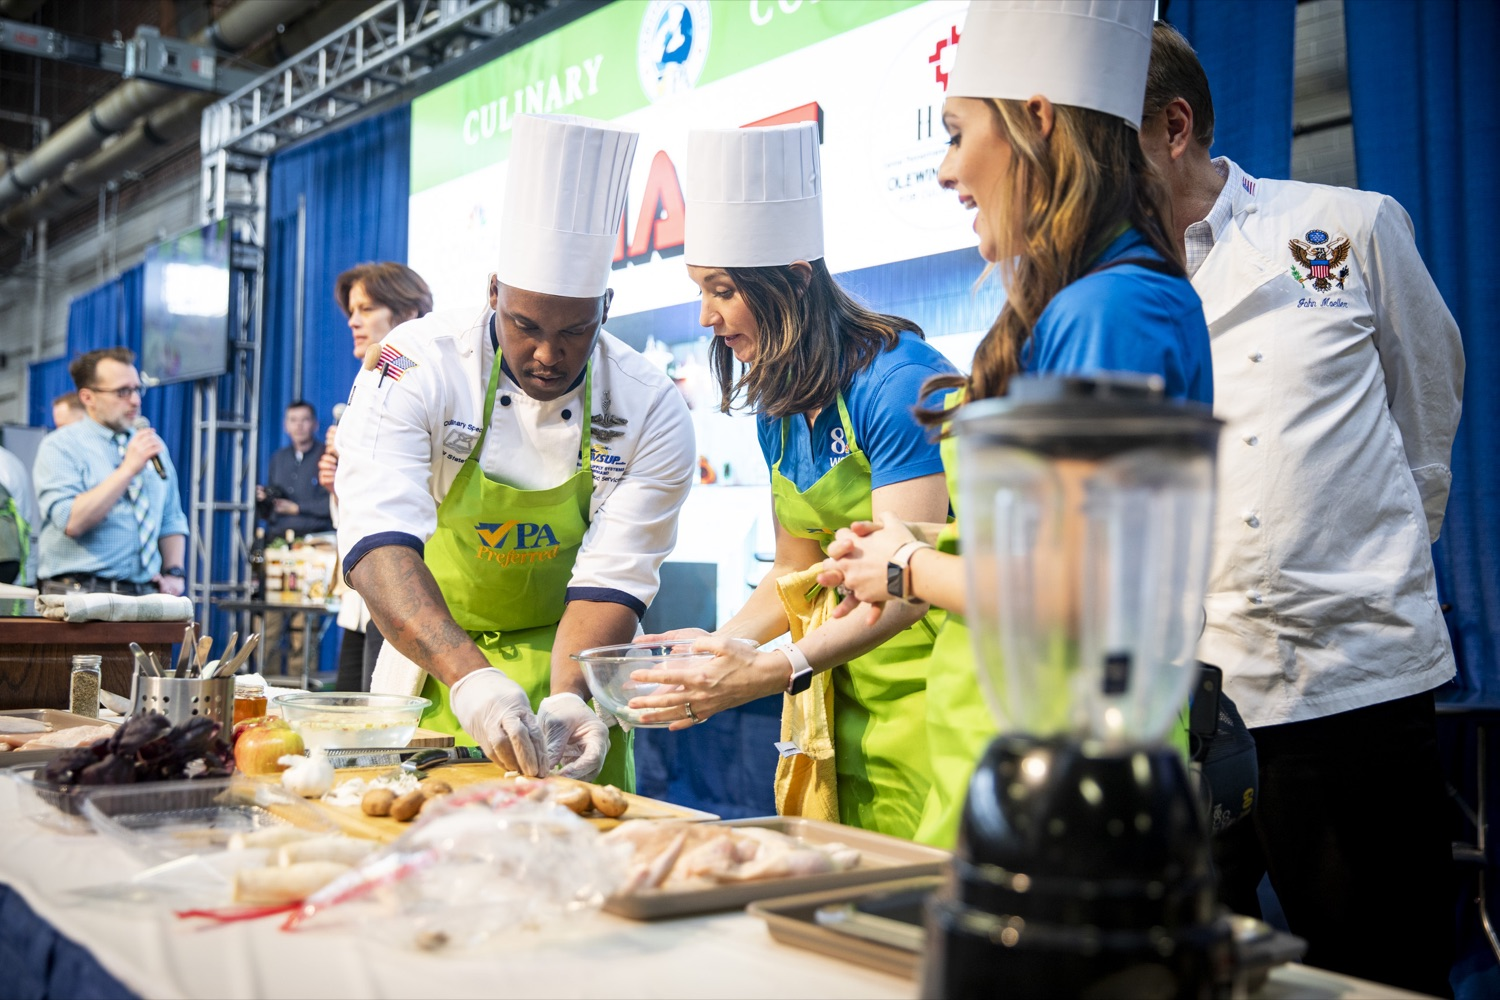 """<a href=""""http://filesource.abacast.com/commonwealthofpa/photo/17651_AGRIC_ARMY_NAVY_COOKOFF_CZ_07.jpg"""" target=""""_blank"""">⇣Download Photo<br></a>Culinary Specialist First Class Marlon ONeil Haughton prepares his meal with Sous Chefs Shannon Murphy and Corinne Lillis of WGAL Channel 8 at the 2020 Army vs. Navy Cook-Off in Harrisburg on January 9, 2020."""